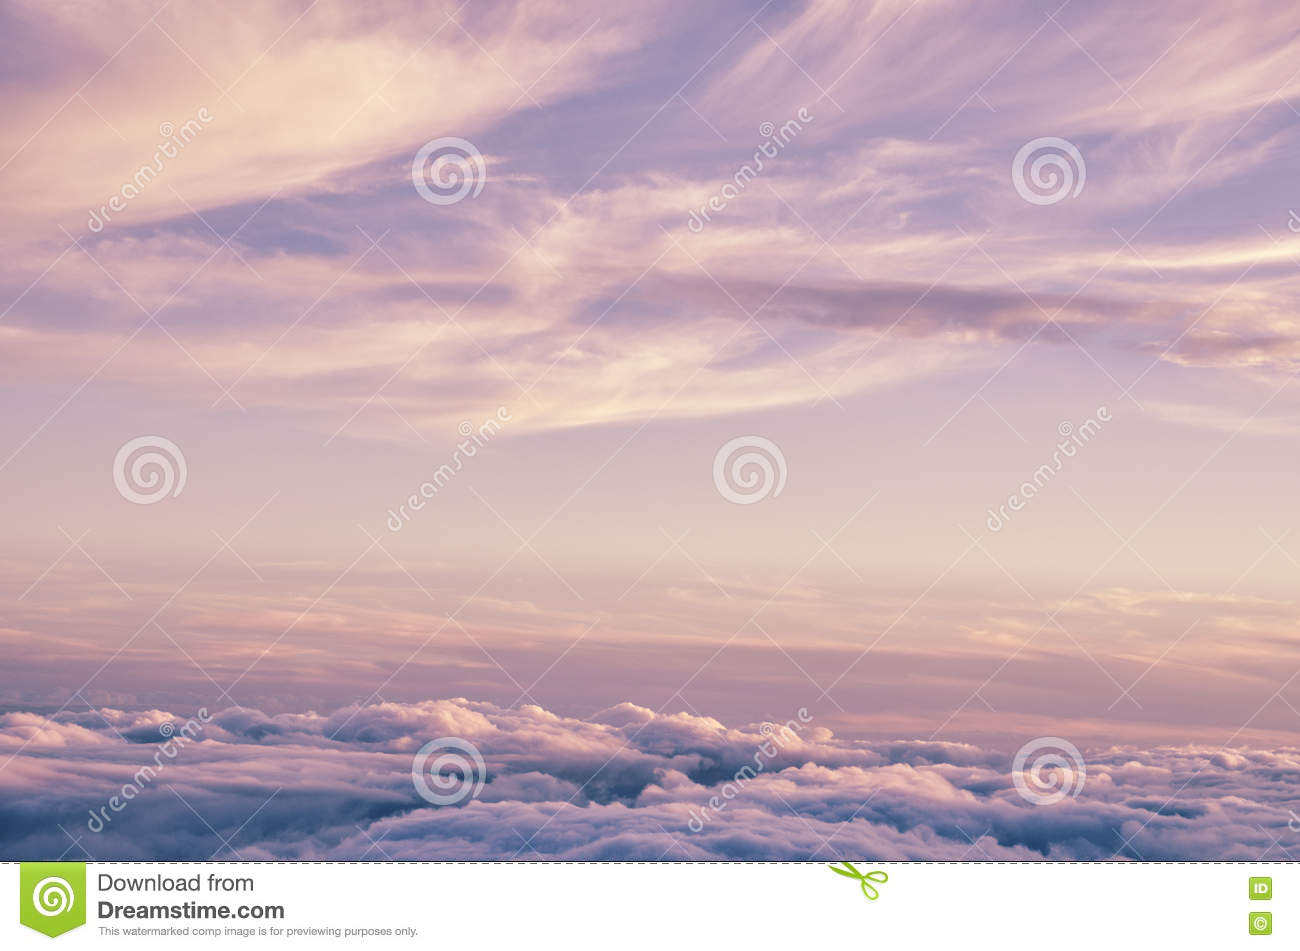 Abstract background with pink, purple and blue colors clouds. Sunset sky above the clouds.